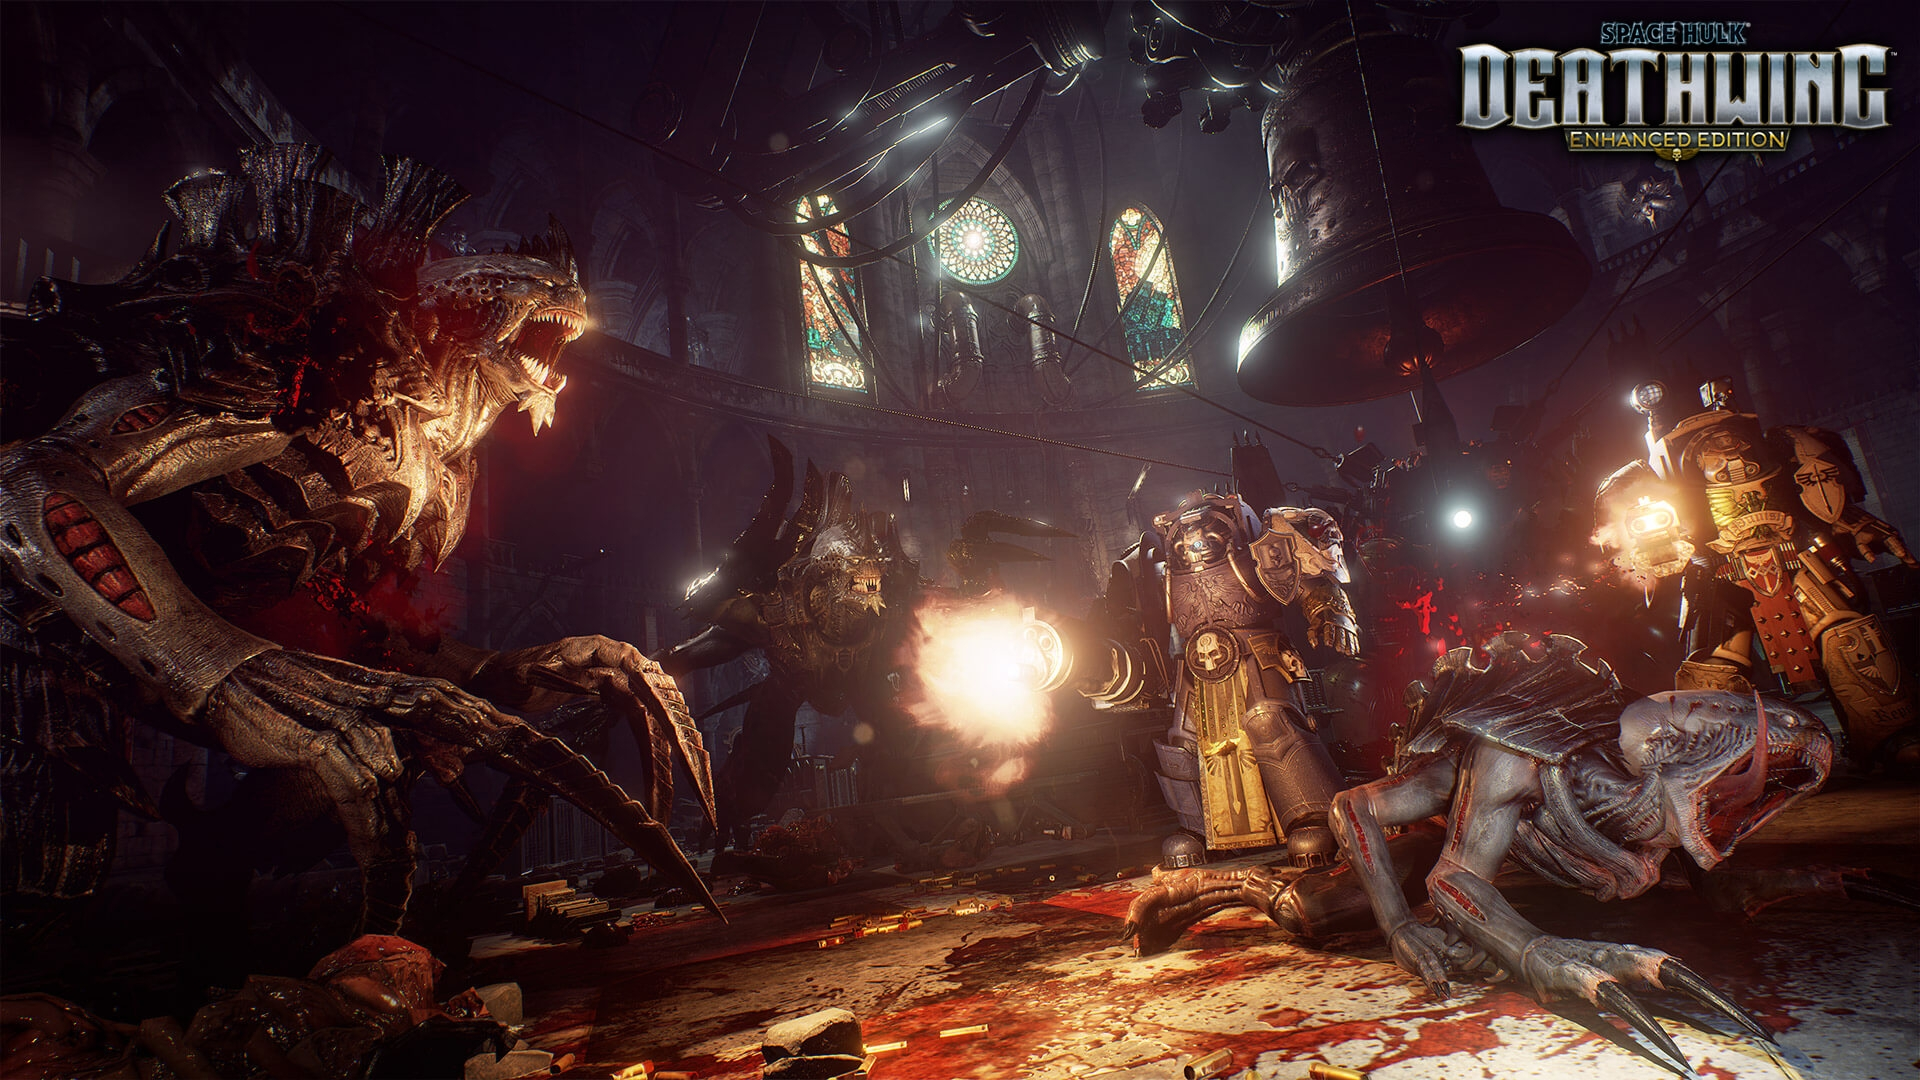 Трейлер Space Hulk: Deathwing — Enhanced Edition, дата выхода для PS4